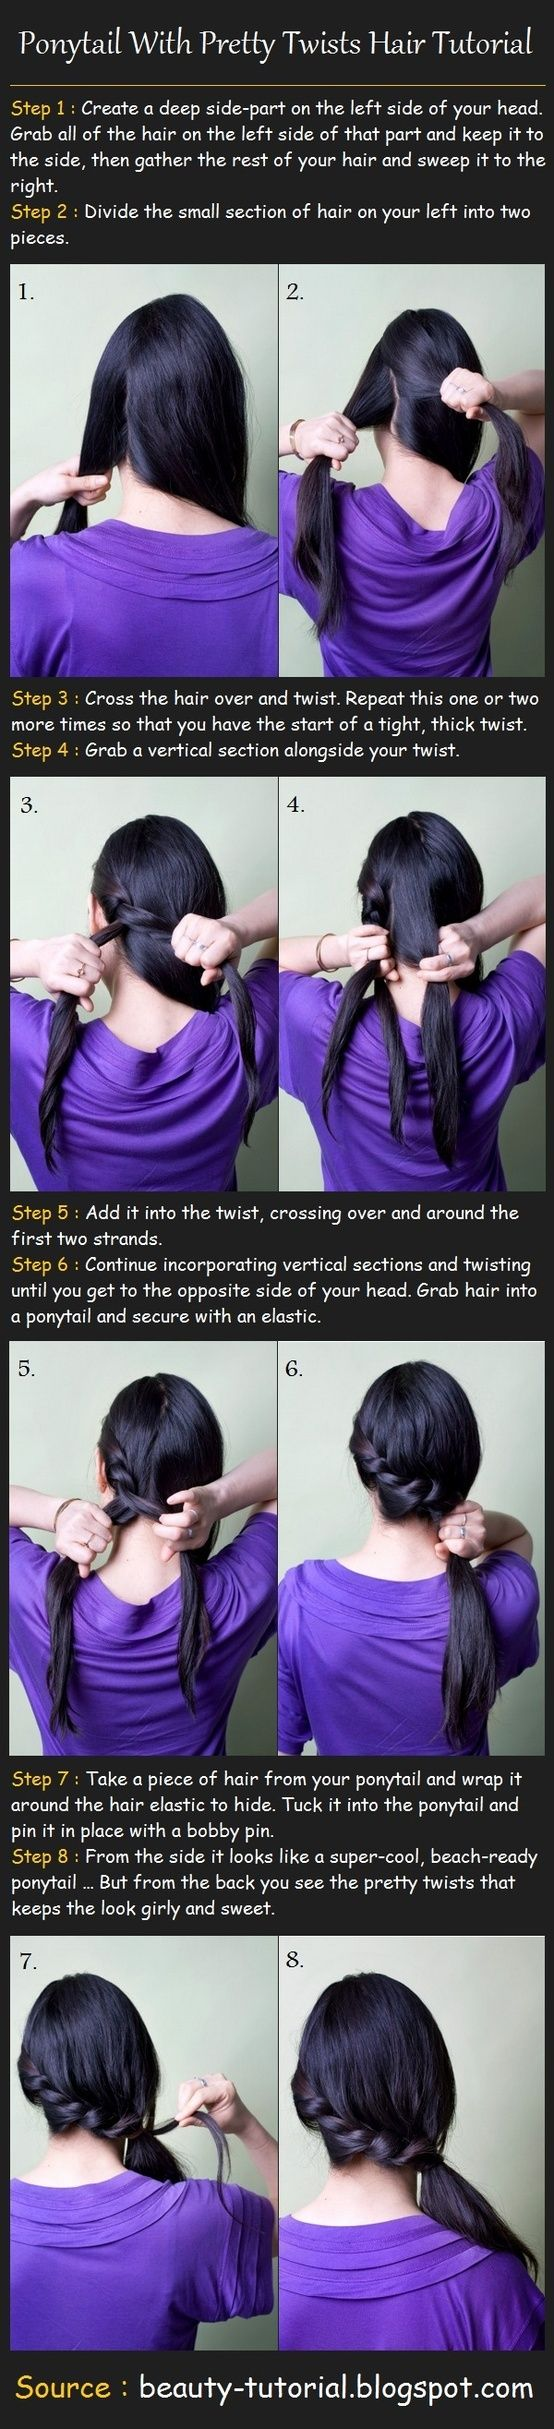 Have To Try When Hair Finally Grows Back!!  <3